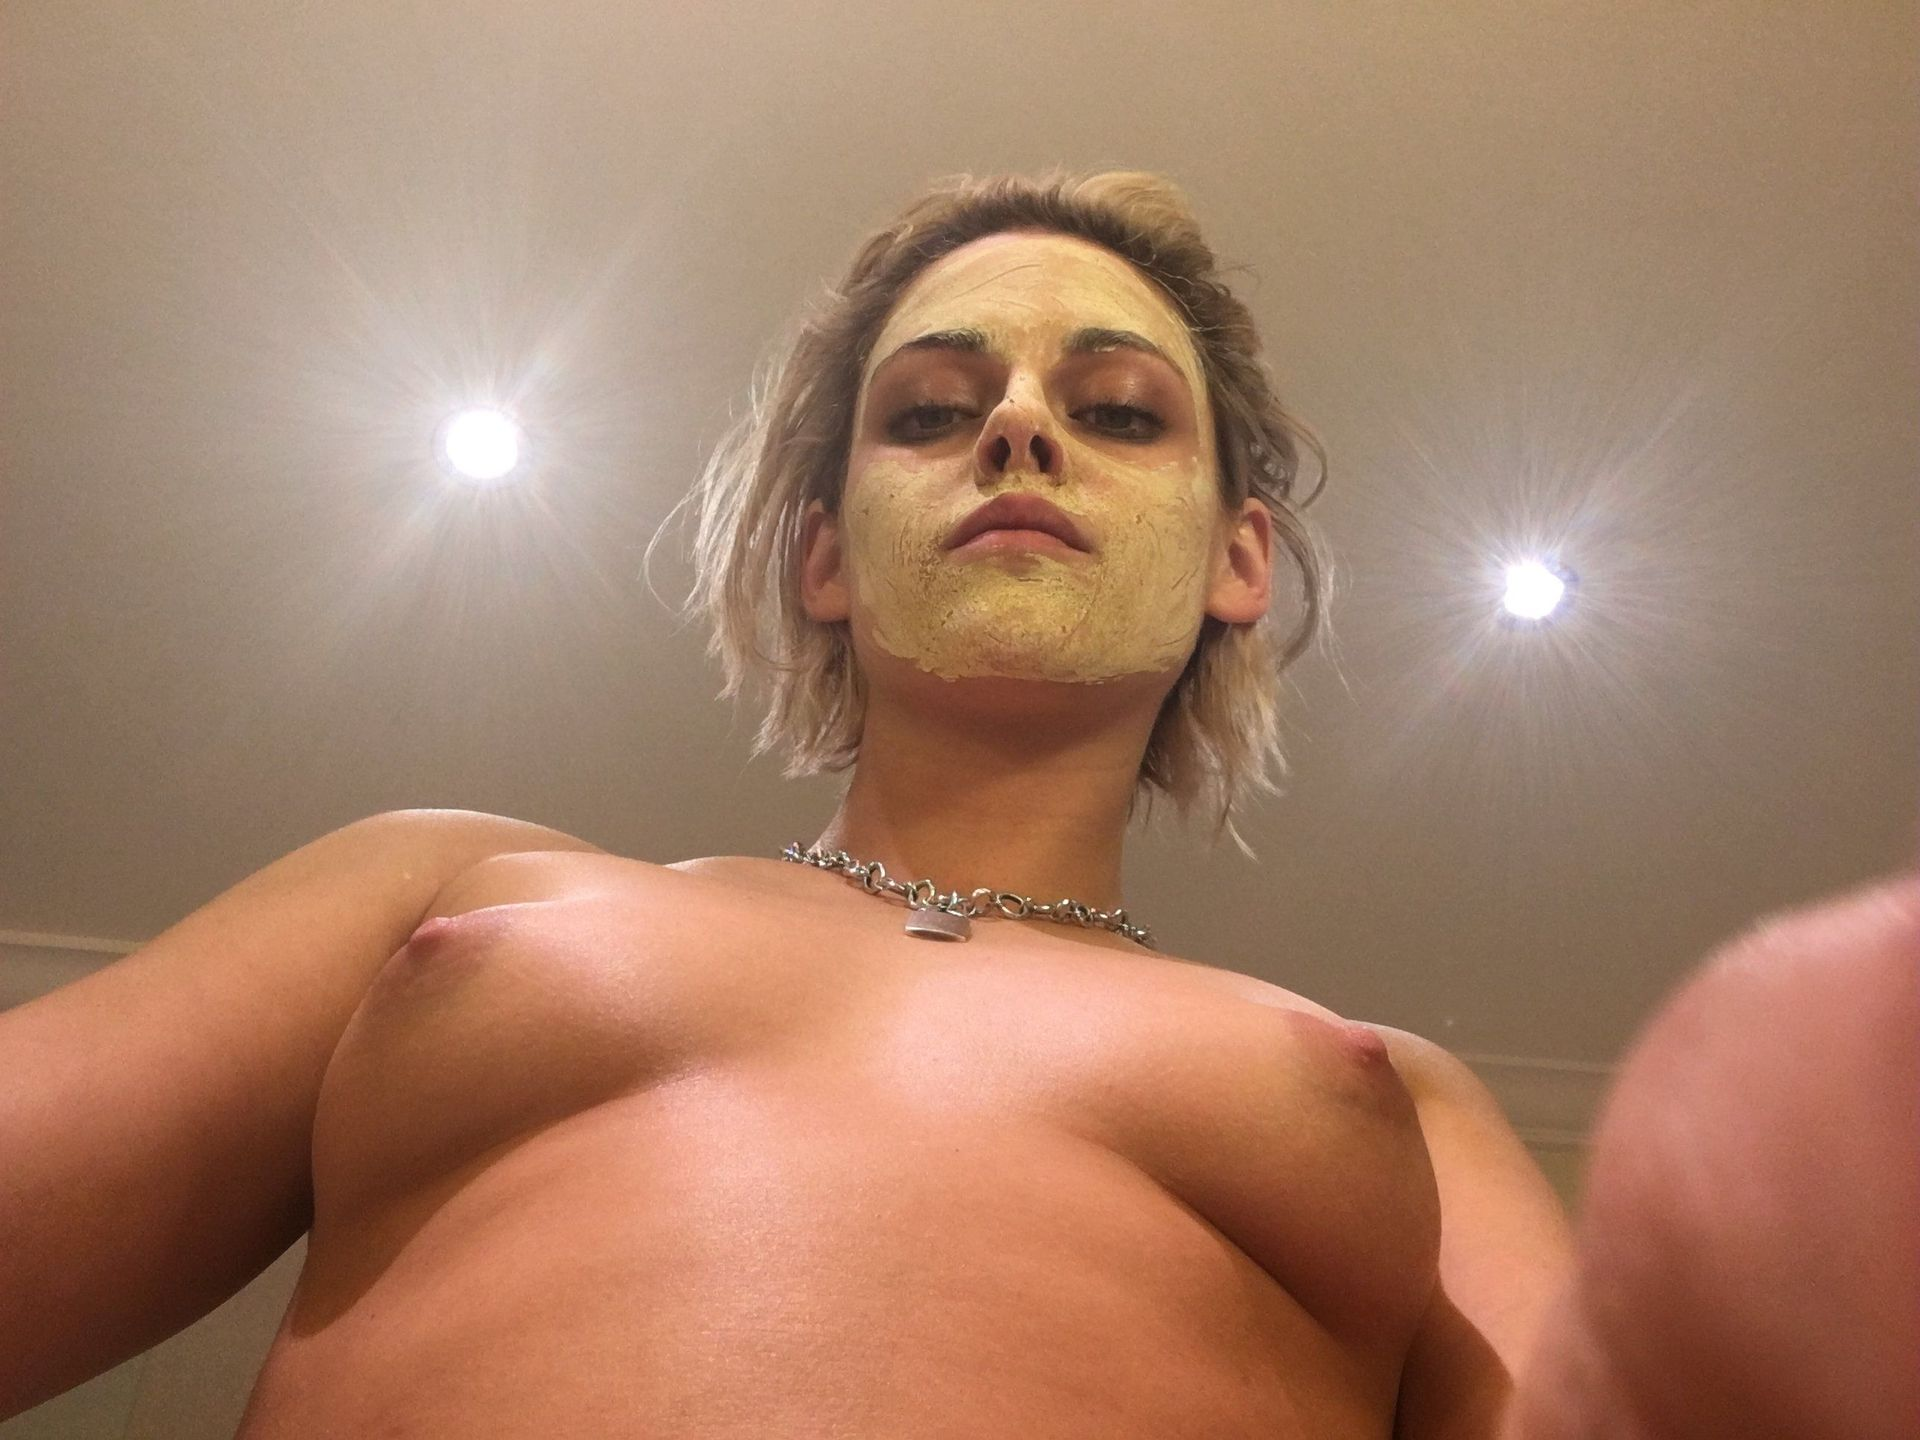 Kristen Stewart Nude Leaked The Fappening Complete Collection 0074